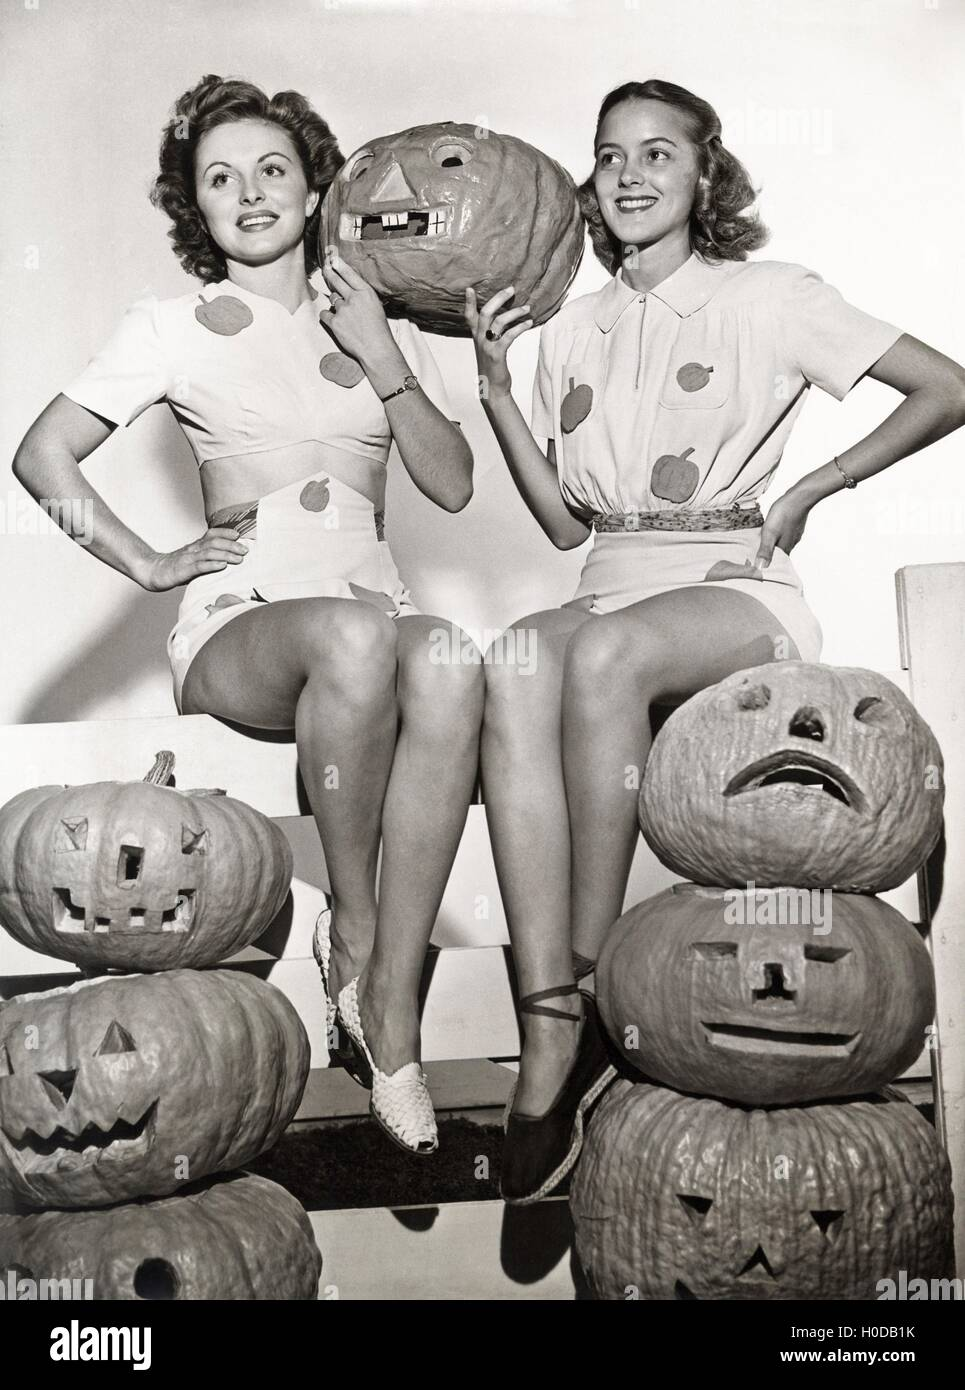 Two women sitting on fence with carved pumpkins - Stock Image